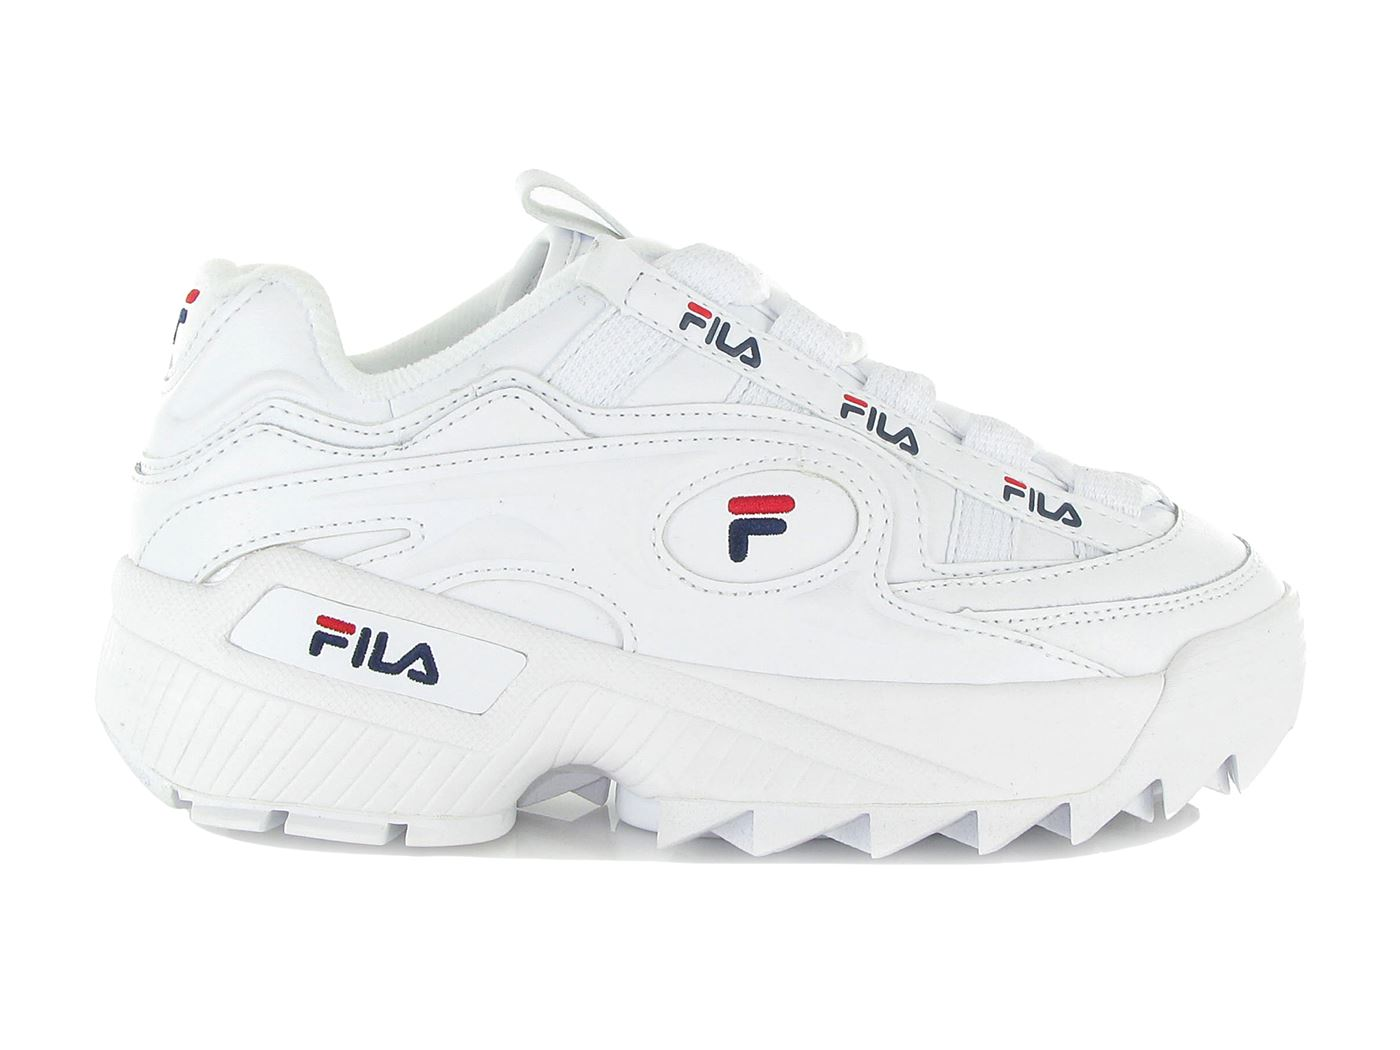 FILA D FORMATION WMN SNEAKER DA DONNA COLOR BIANCO